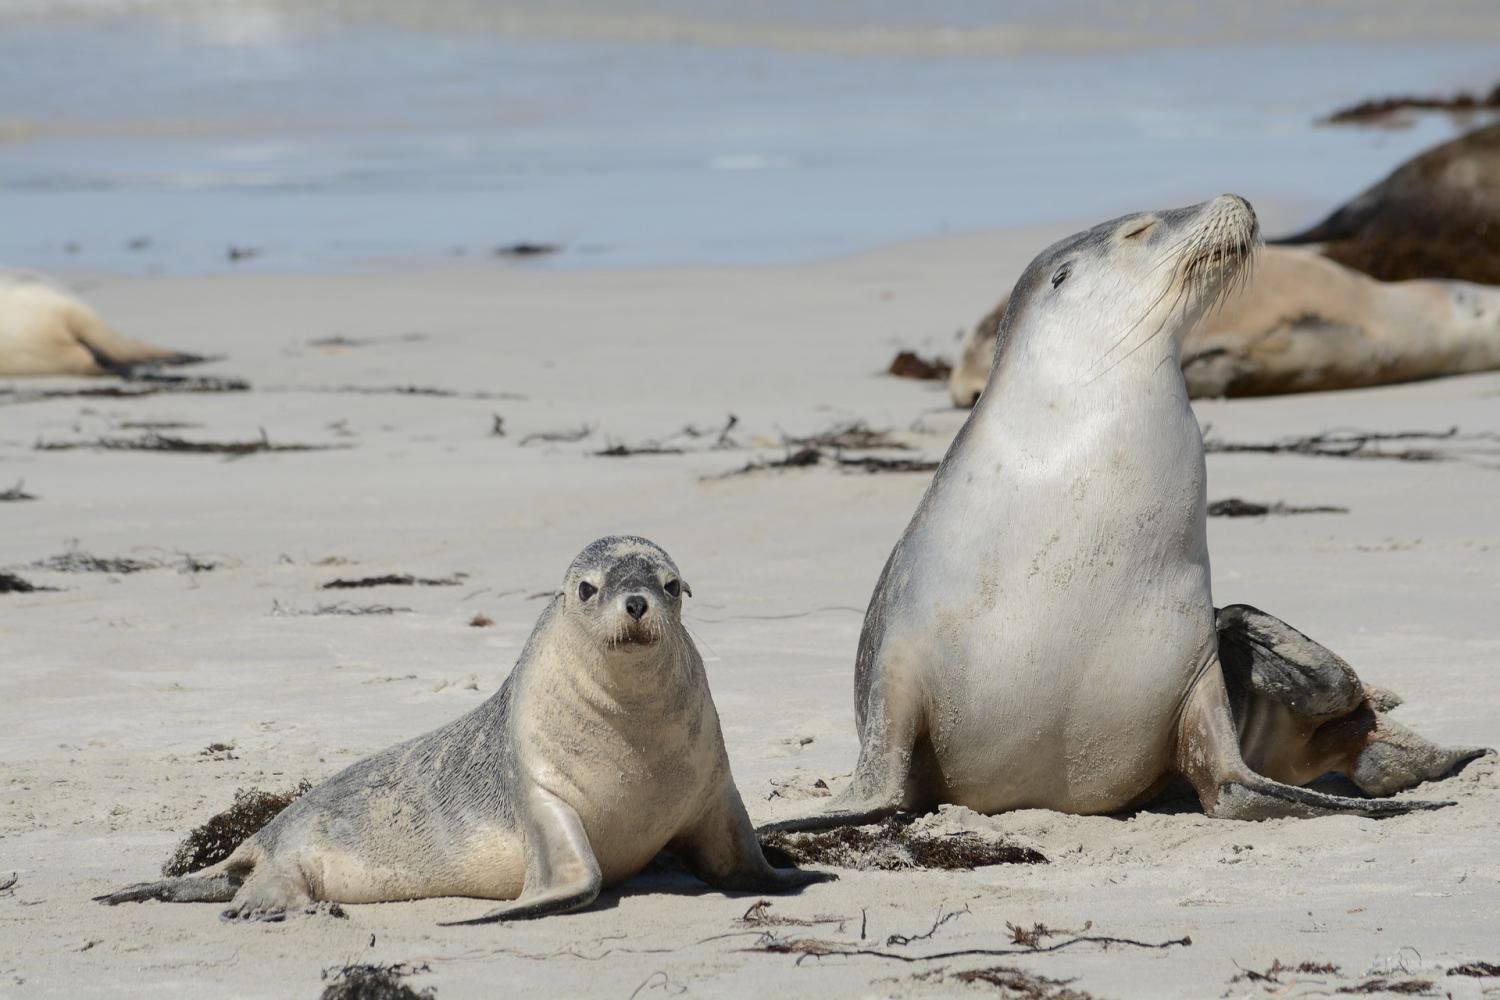 Walk in the wild with seals on the beach at Seal Bay, home for over 500 Australian Sea Lions